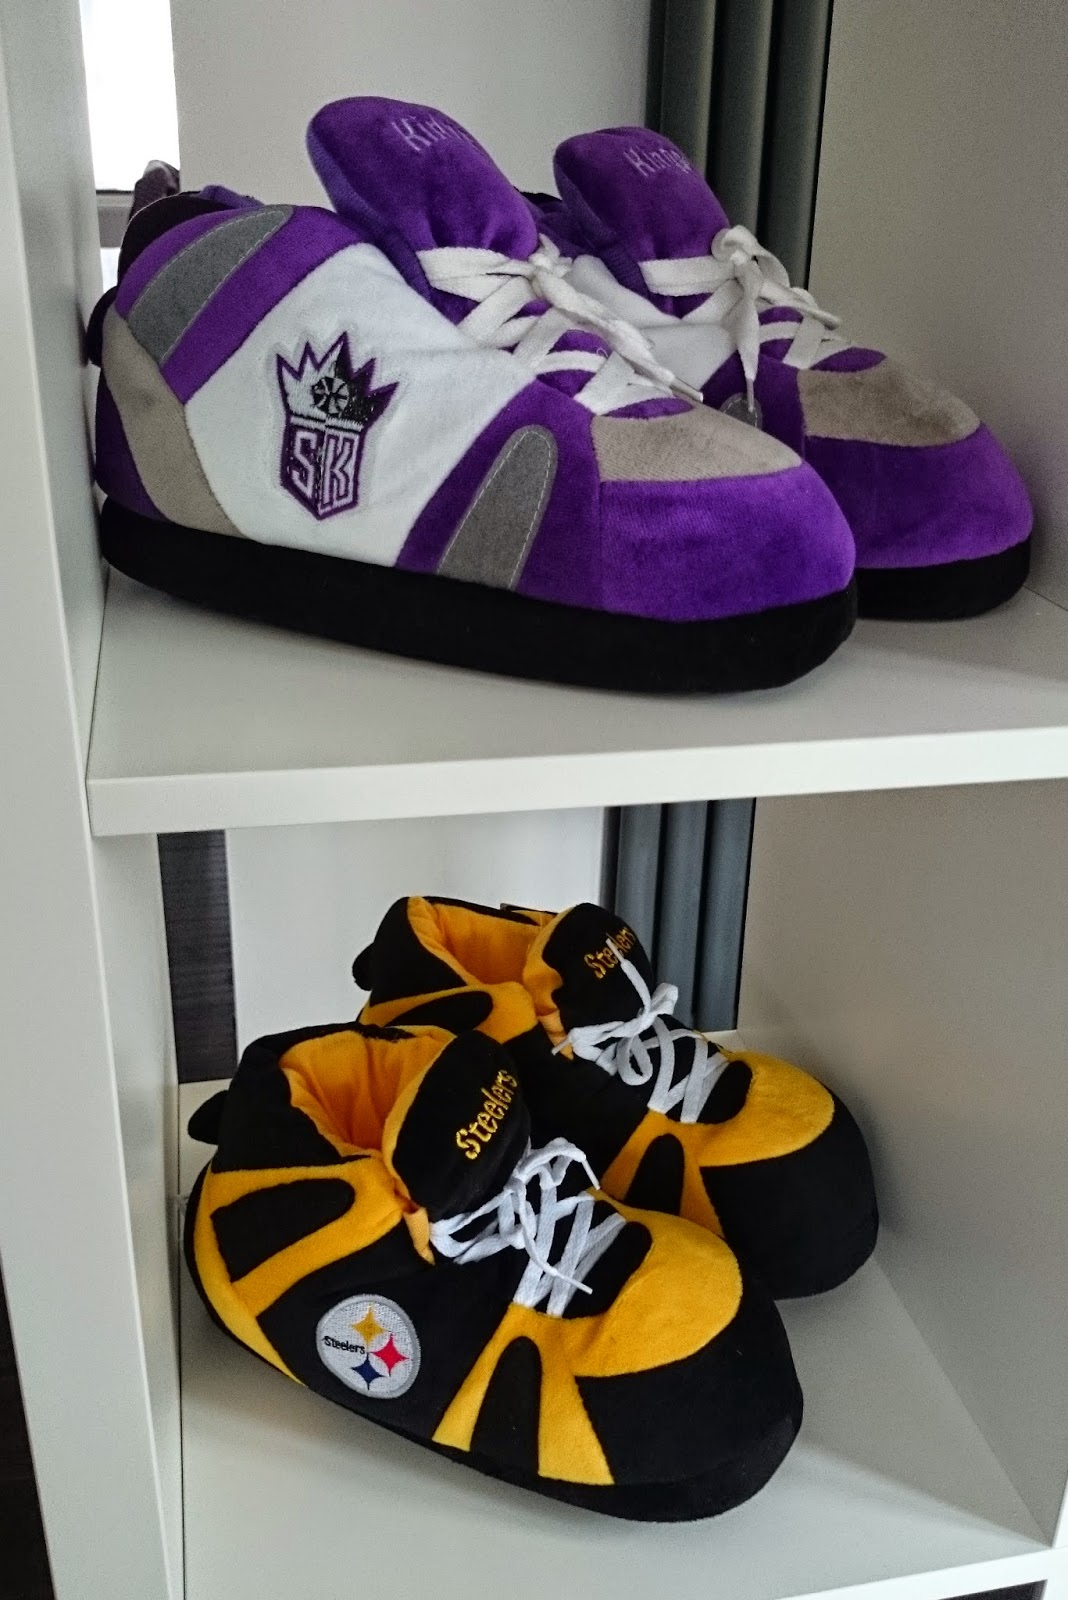 Sacramento Kings Pittsburgh Steelers american football NFL national football league giant big sneaker slippers